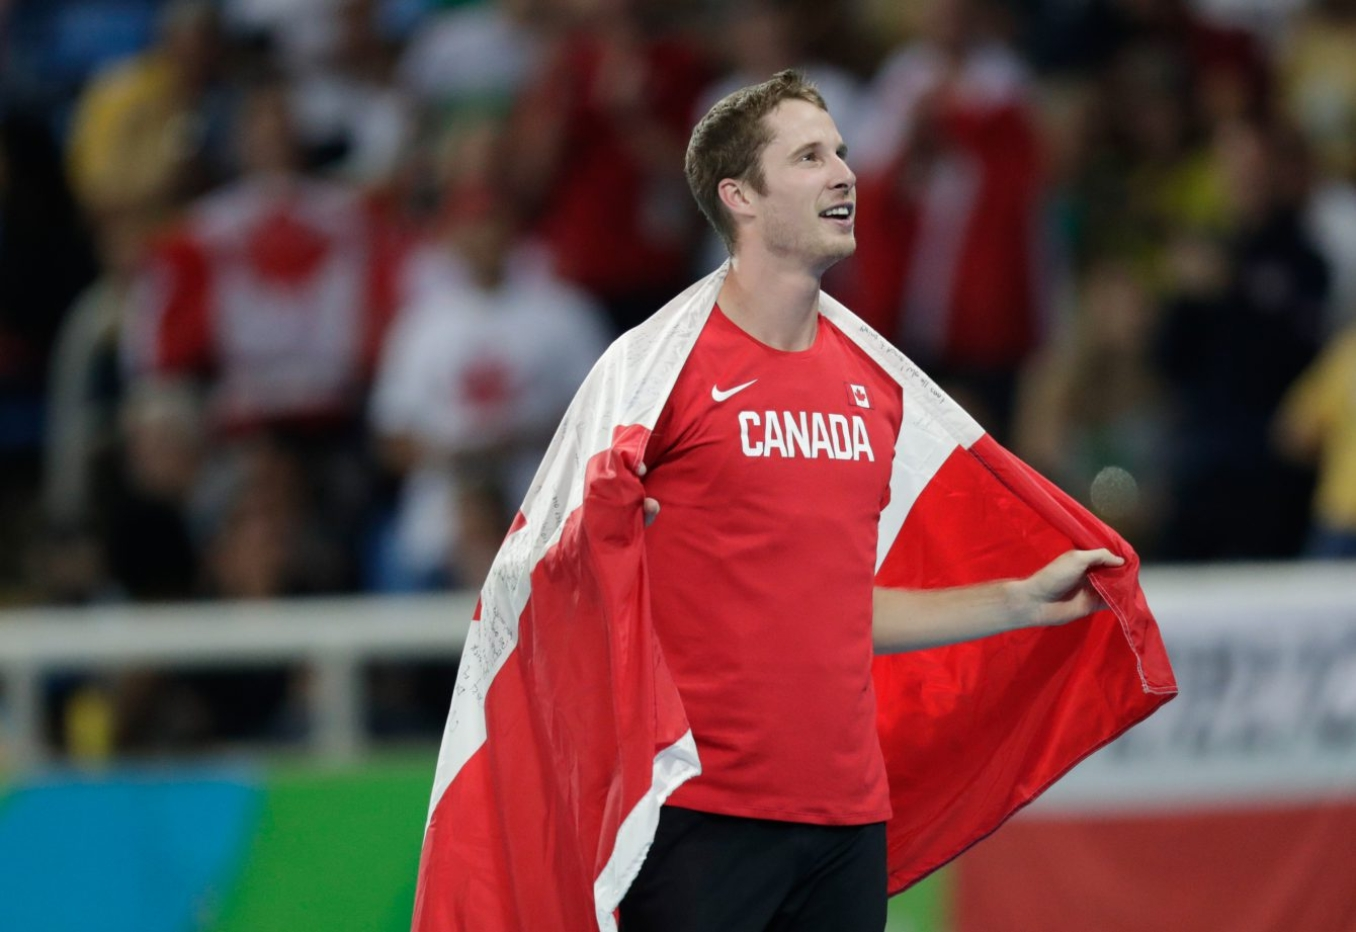 Canada's Derek Drouin celebrates after finishing first in the men's high jump final at the 2016 Summer Olympics in Rio de Janeiro, Brazil, Tuesday, August 16, 2016. (photo/Jason Ransom)